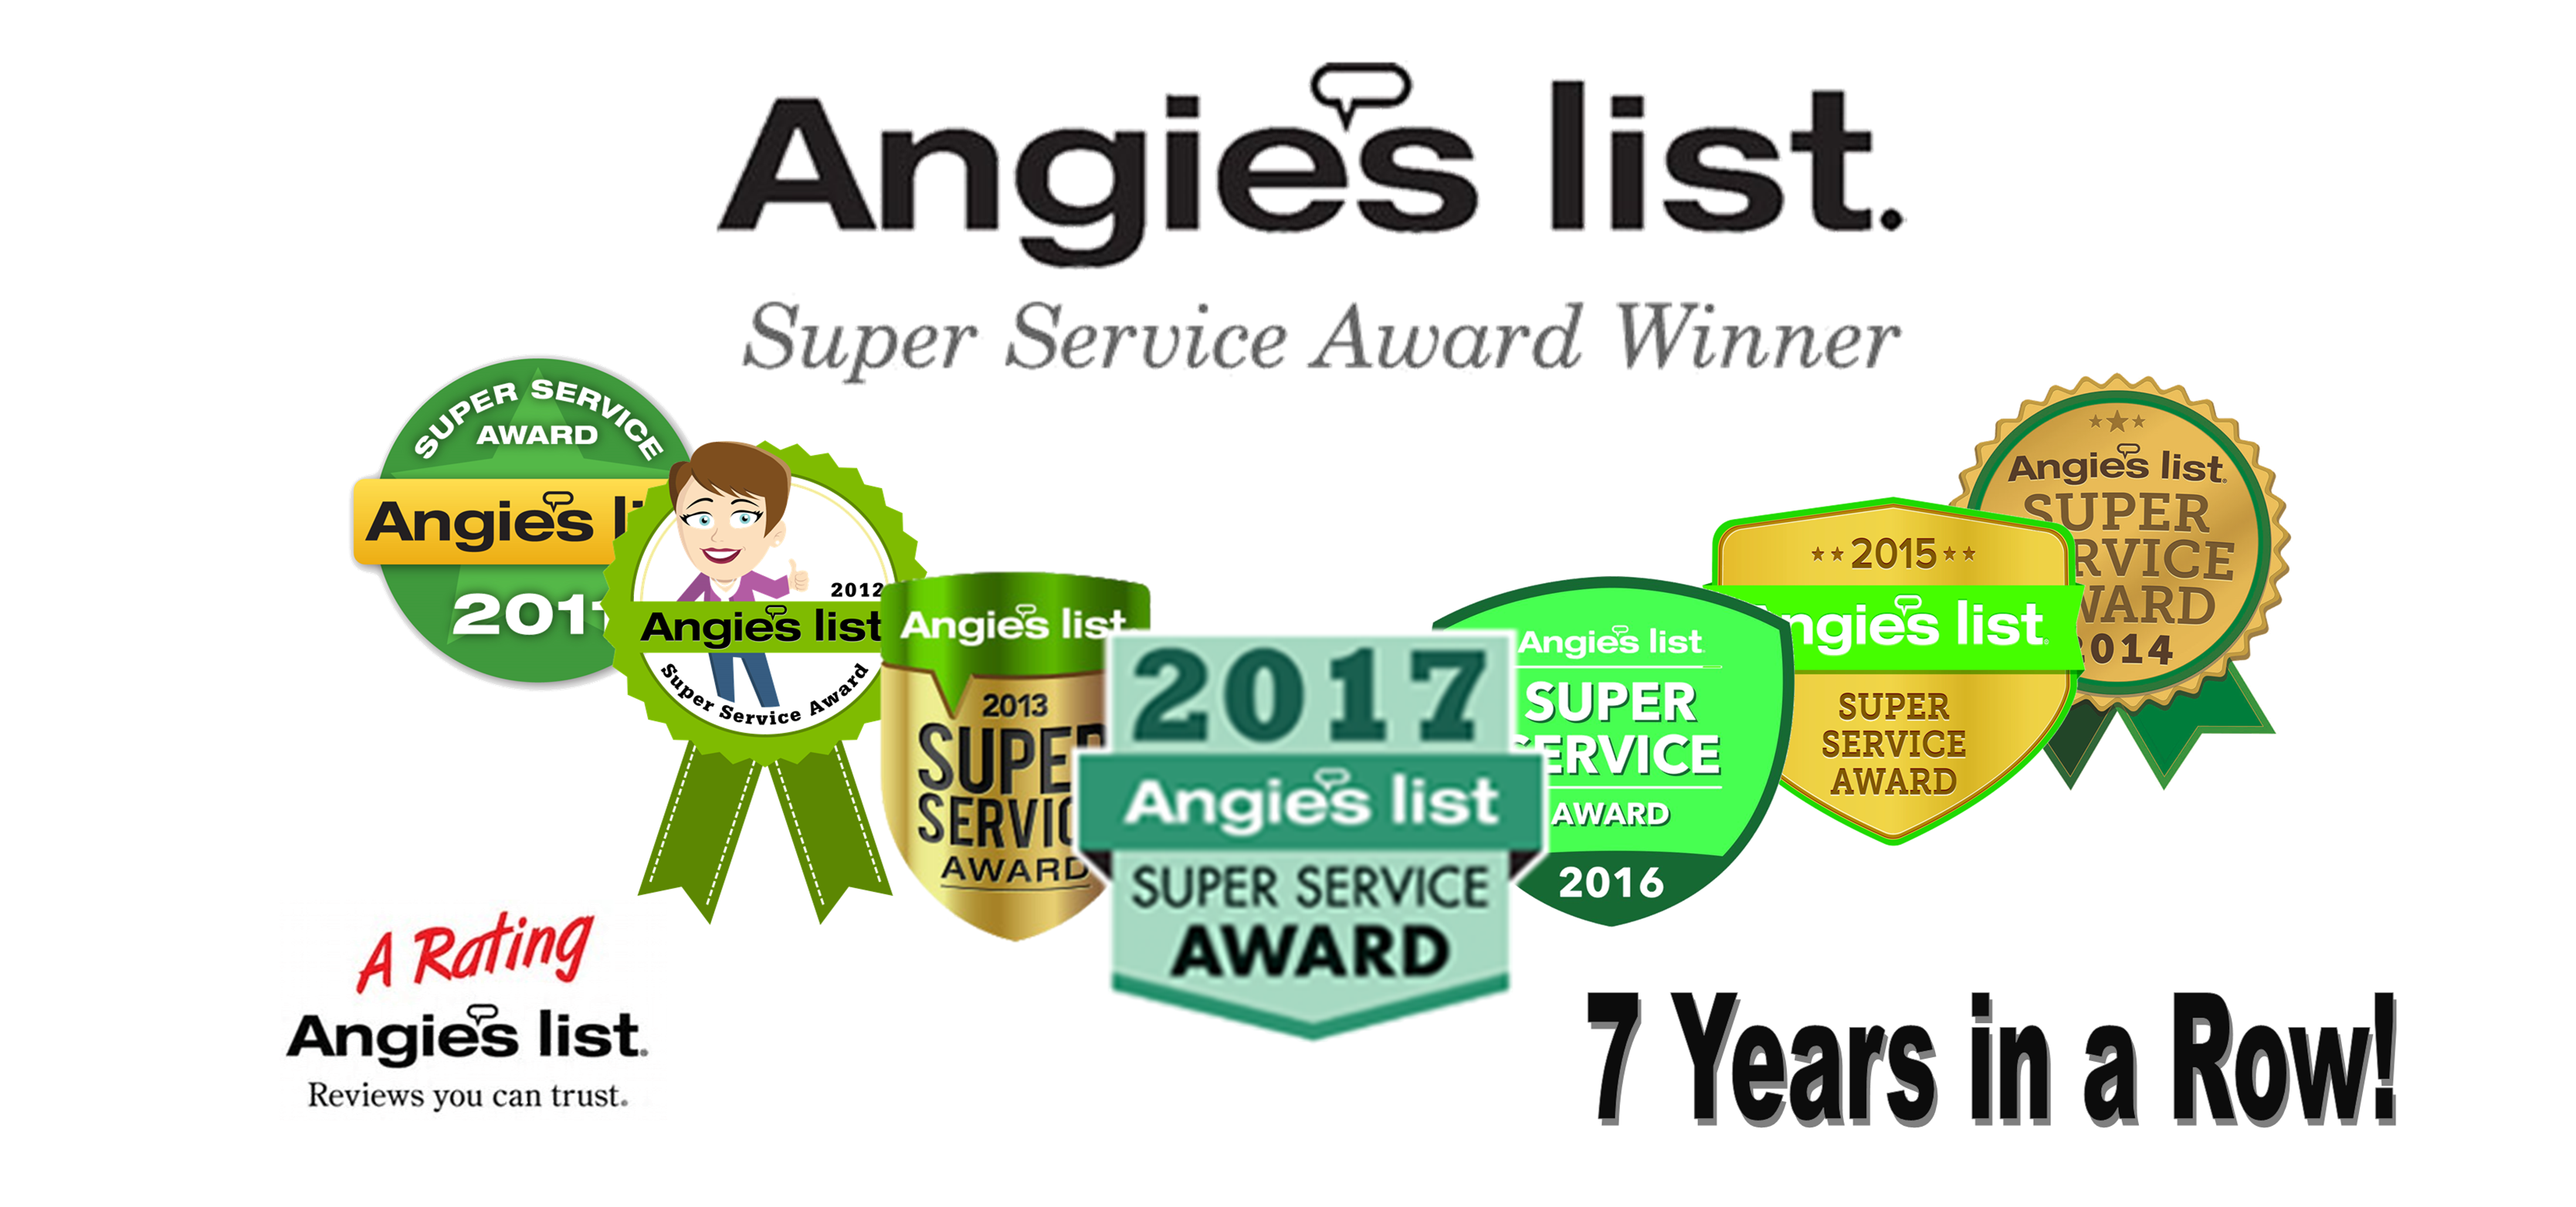 Angie's List Carpet Cleaning Super Service Awards